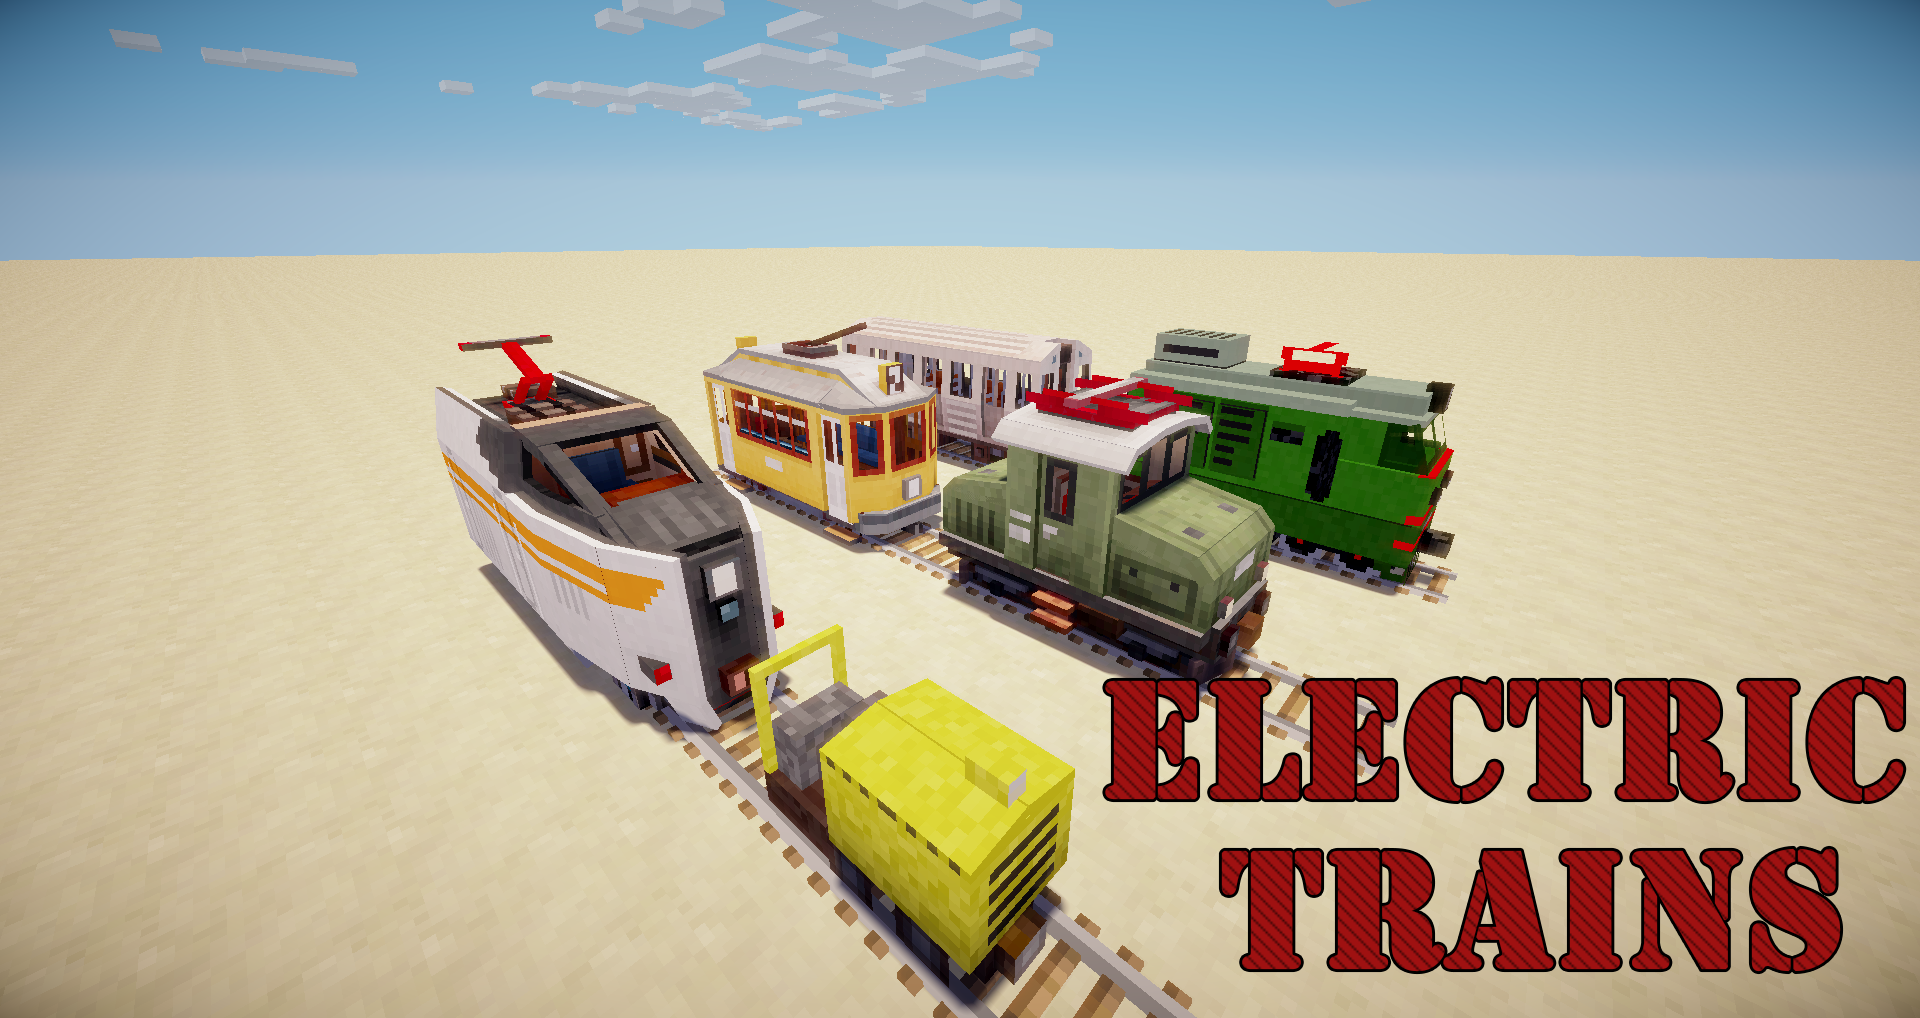 Traincraft showcase trains in minecraft! Youtube.